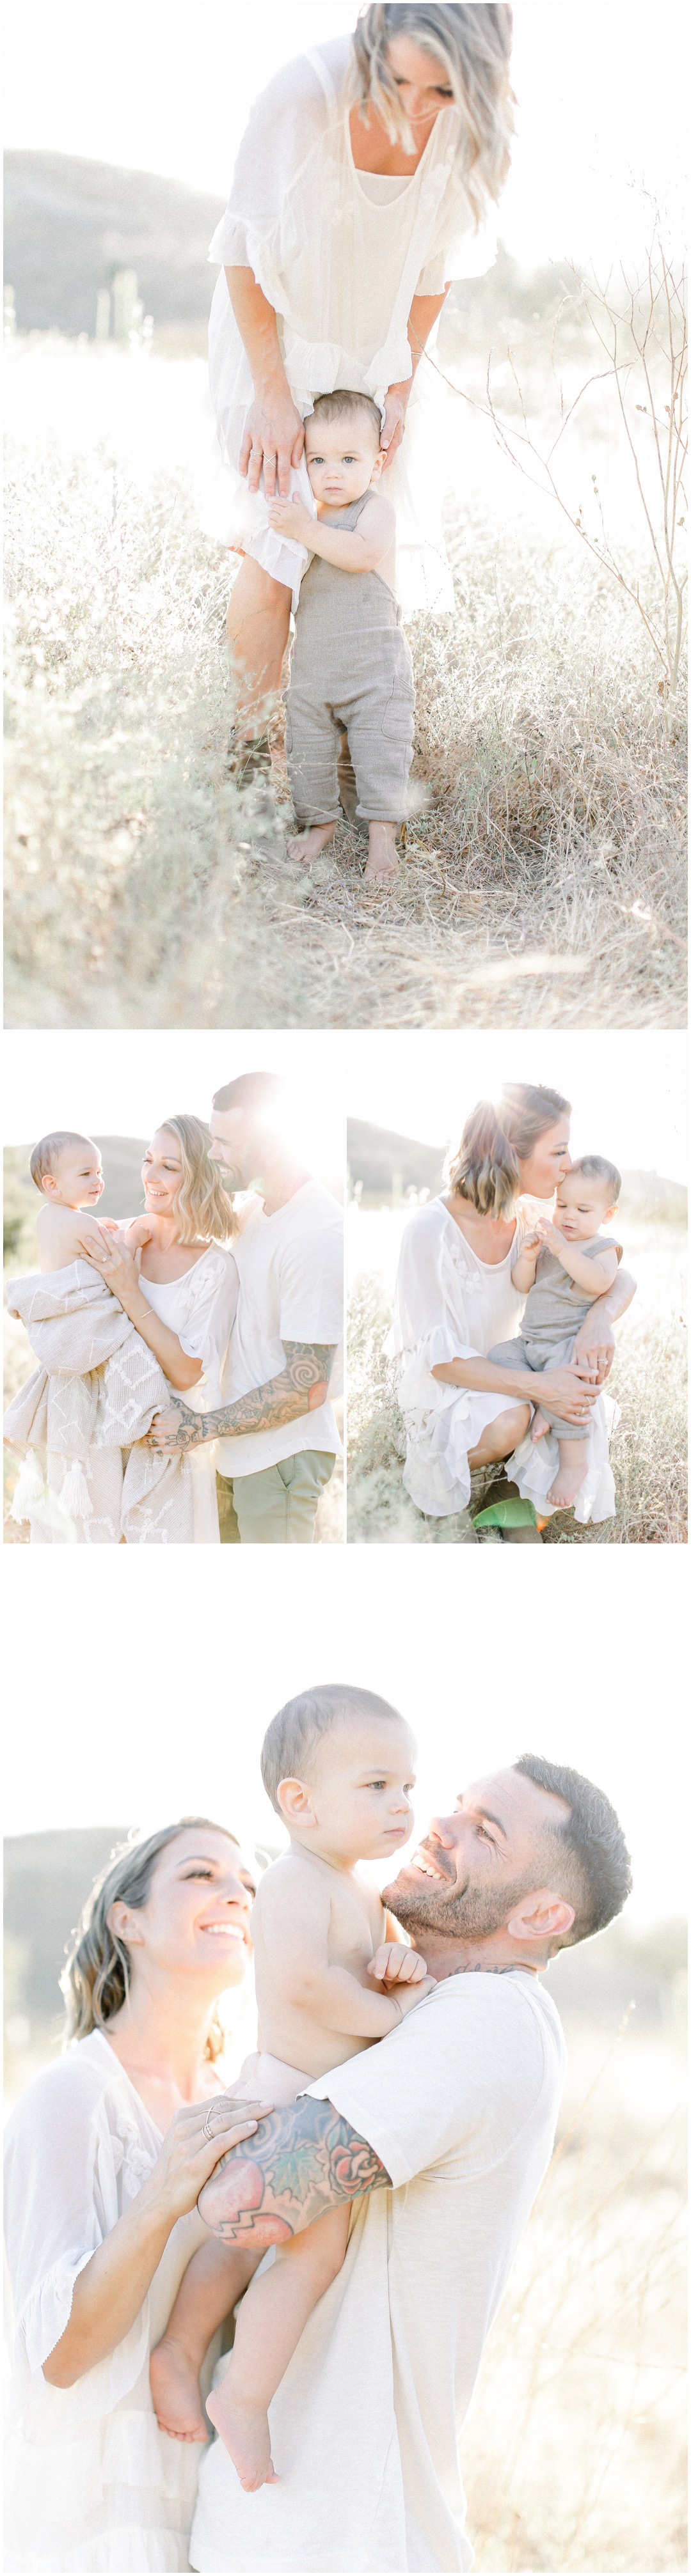 Newport_Beach_Family_Session_Orange_County_Family_Photographer_Thomas_Riley_Wilderness_Park_Carrie_Stotts_Sean_Stotts__4322.jpg